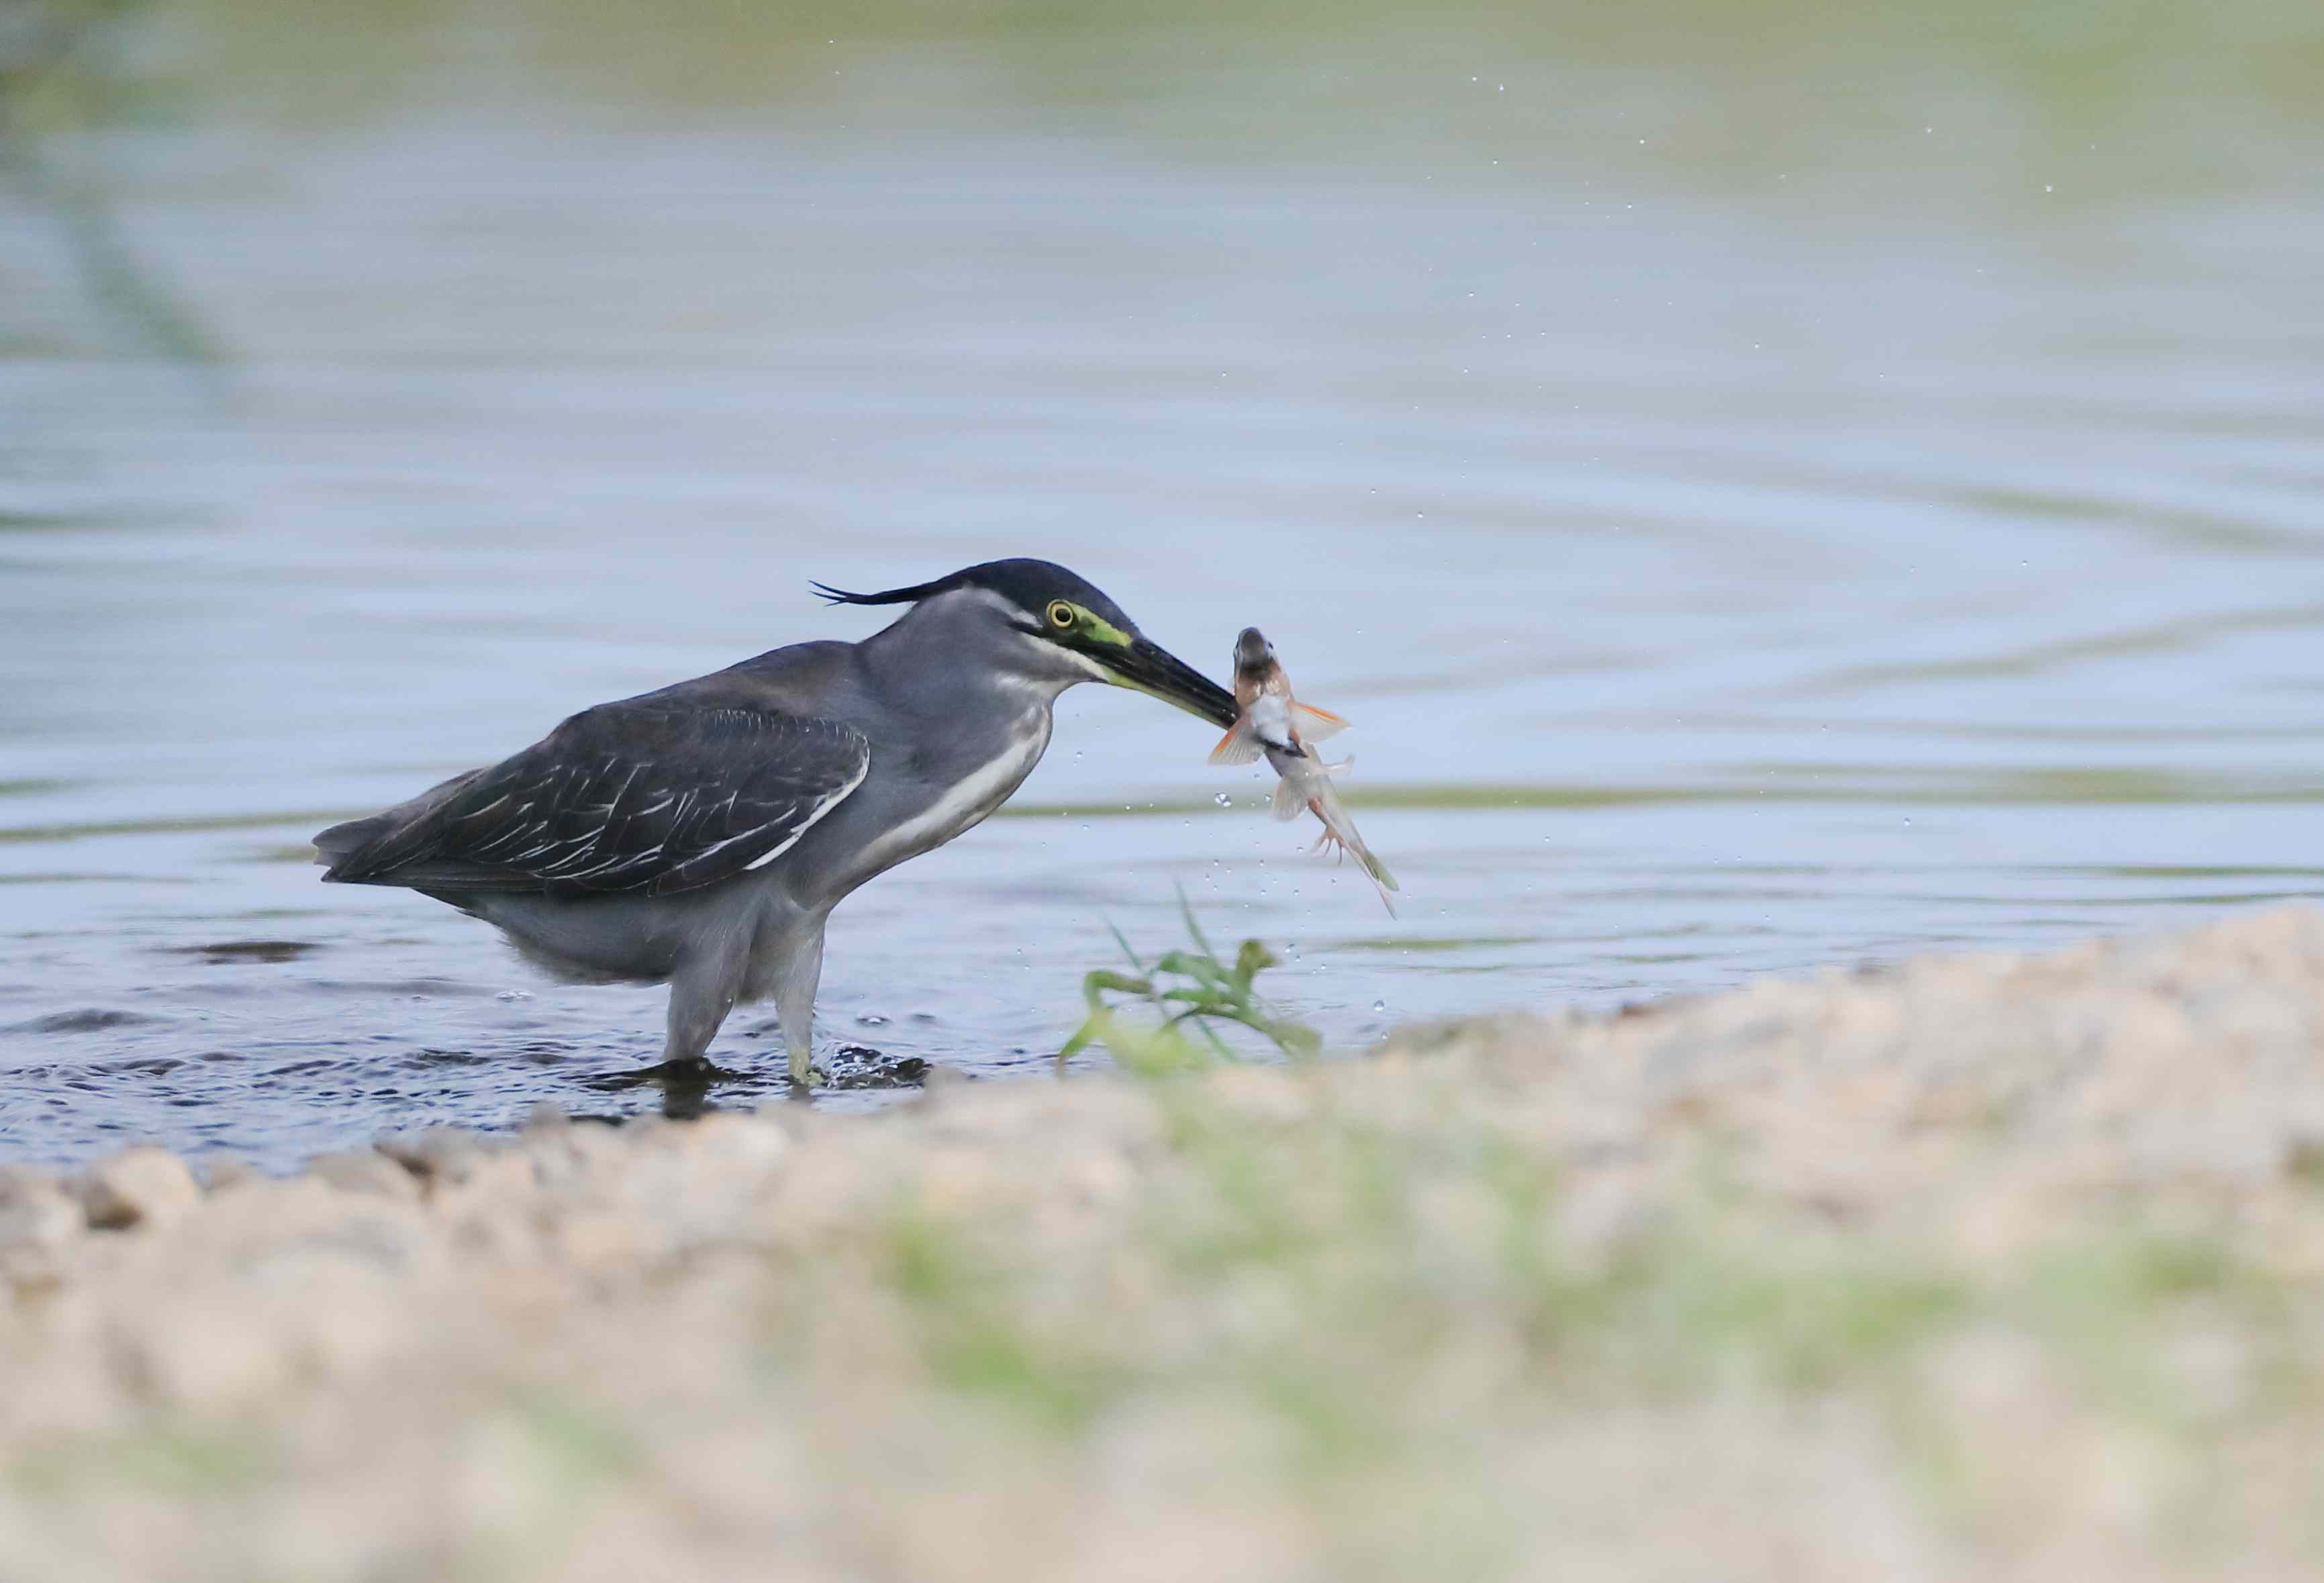 Striated heron emerging from the water with a fish